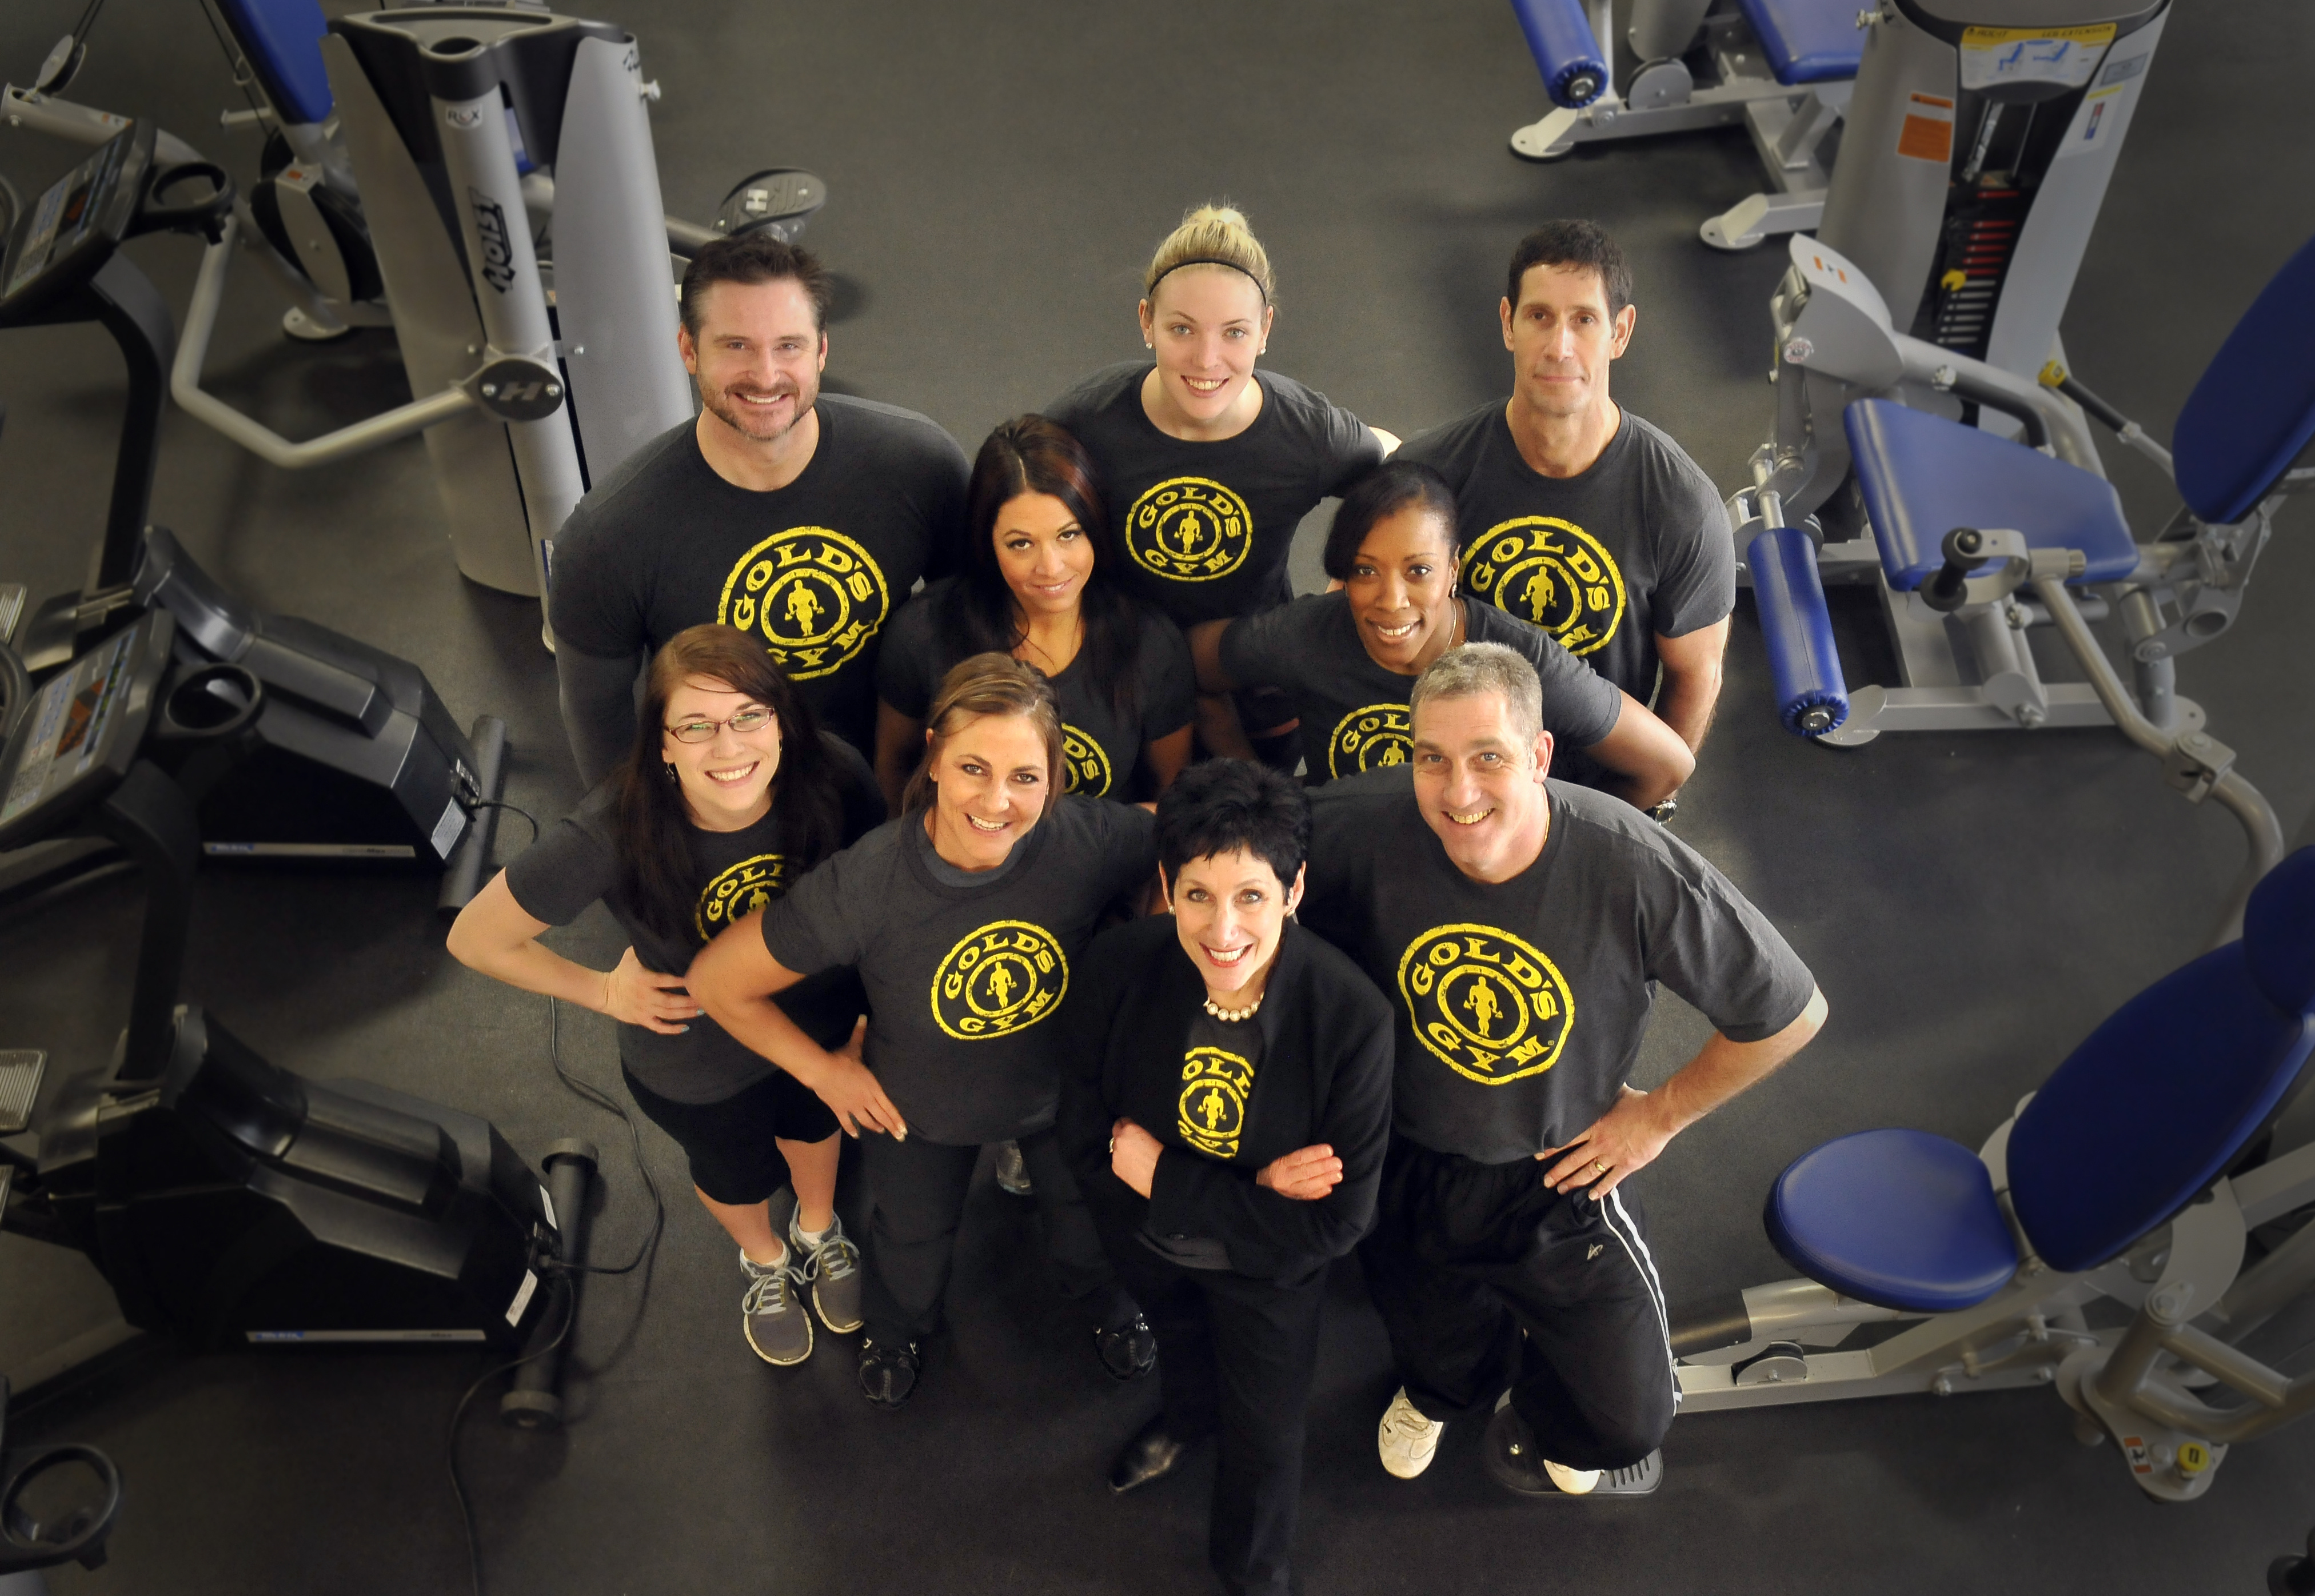 Gold's Gym owner molds business one member at a time   The ...